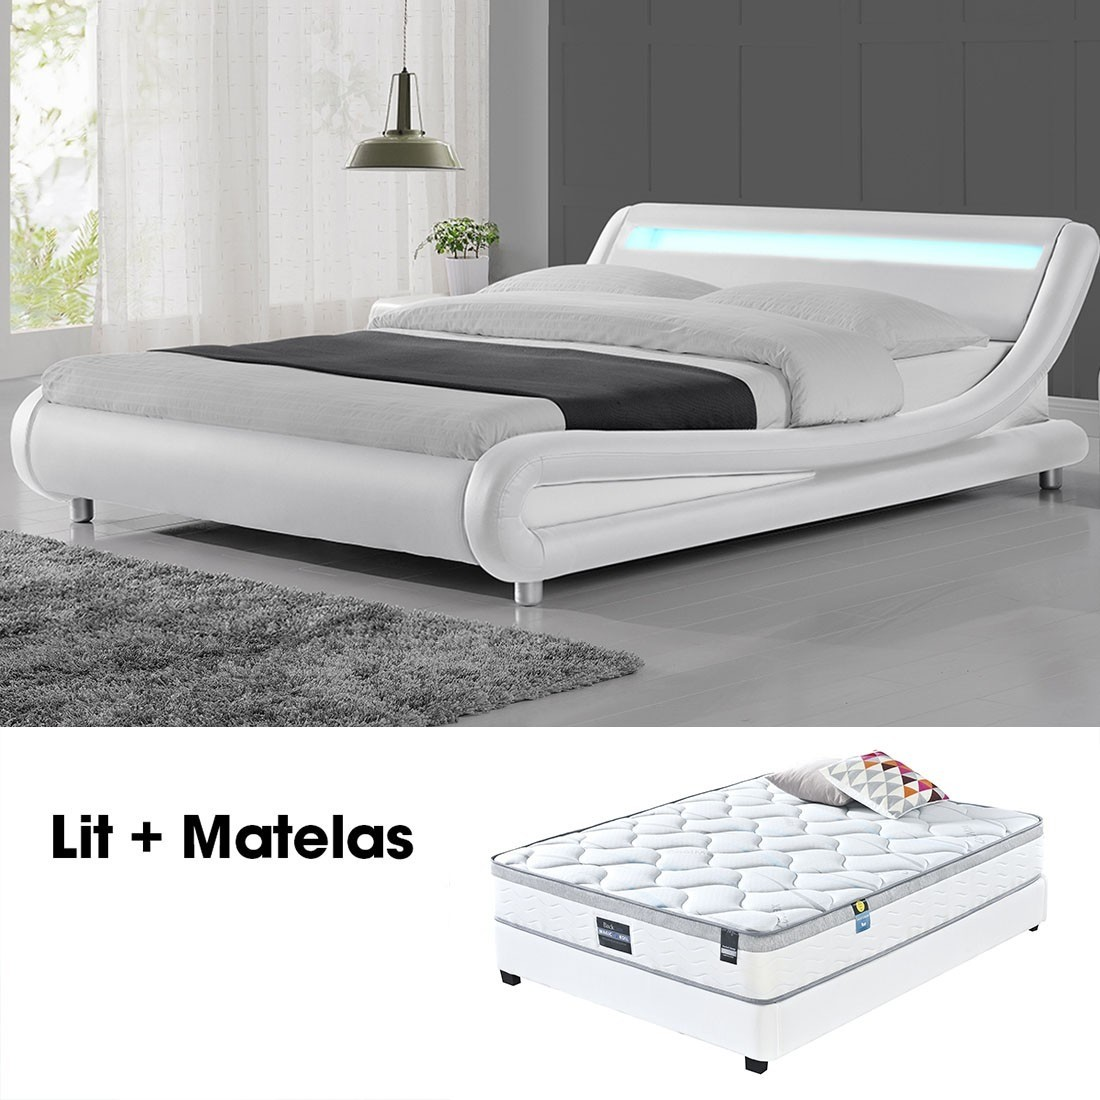 lit matelas julio blanc 140cm avec matelas romance. Black Bedroom Furniture Sets. Home Design Ideas